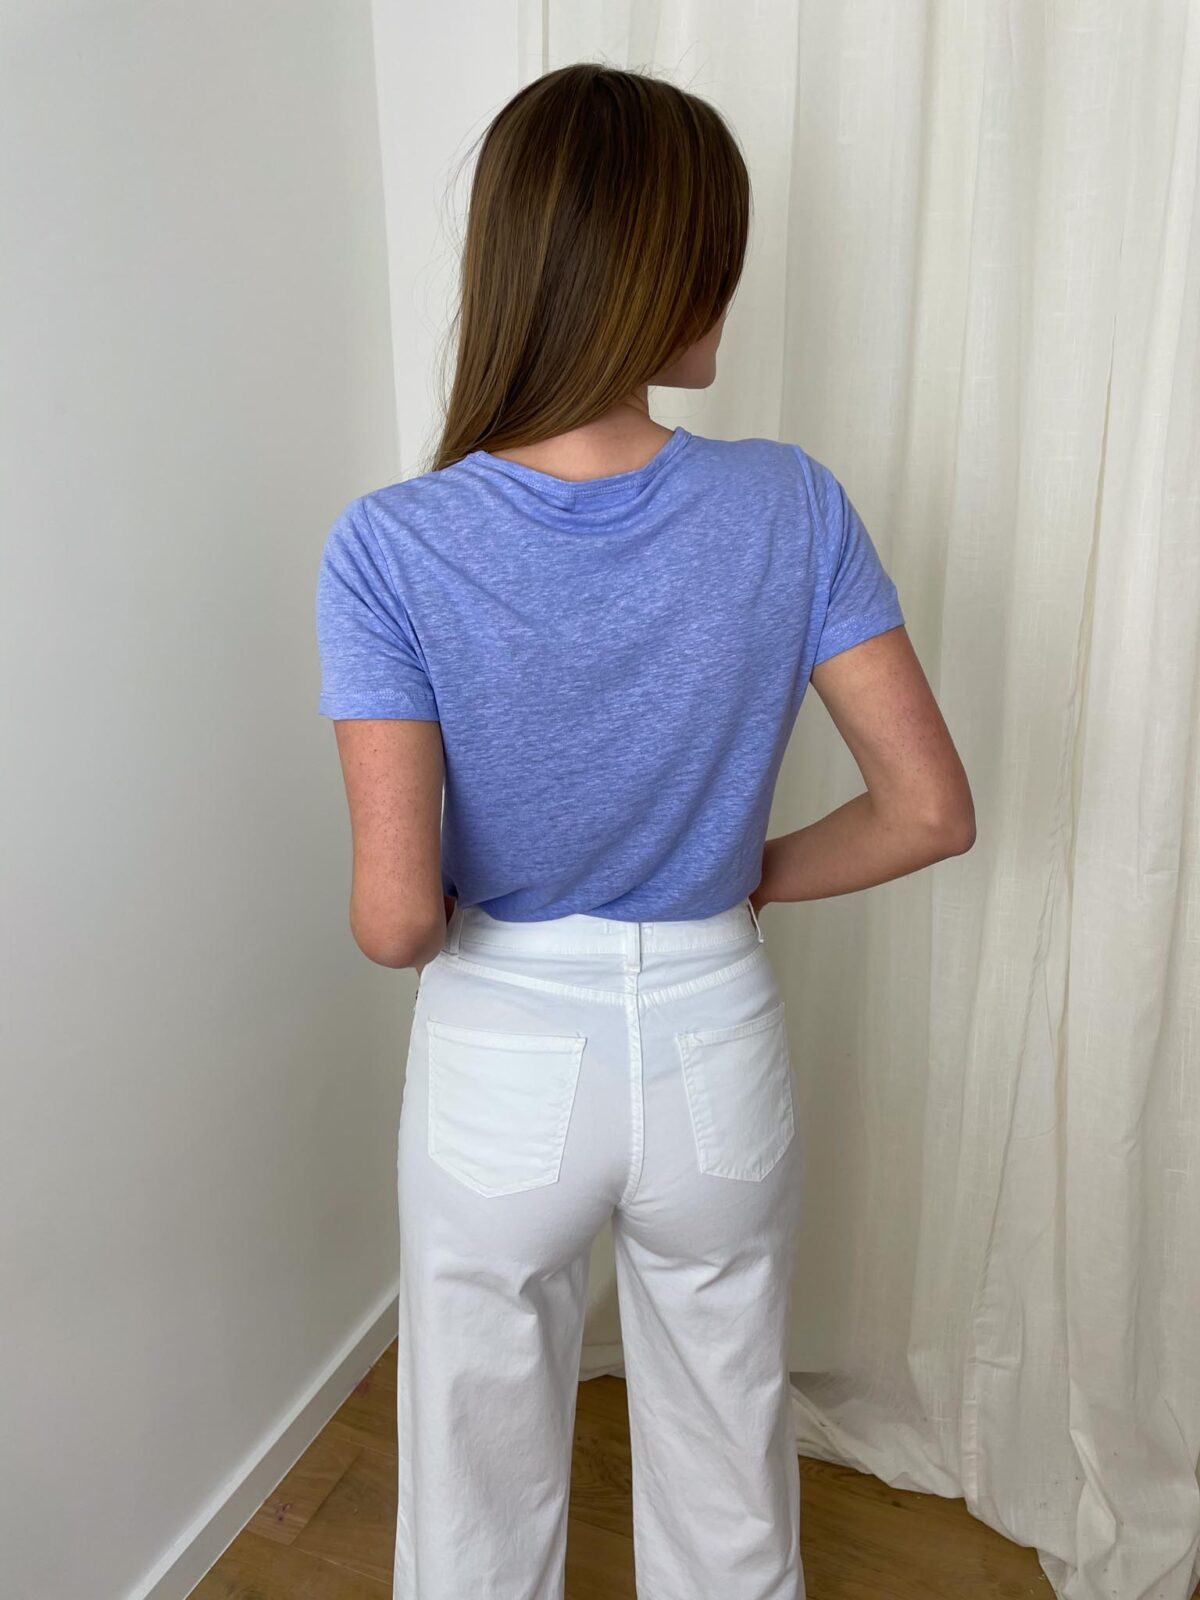 woman with a purple tshirt and white denim pants